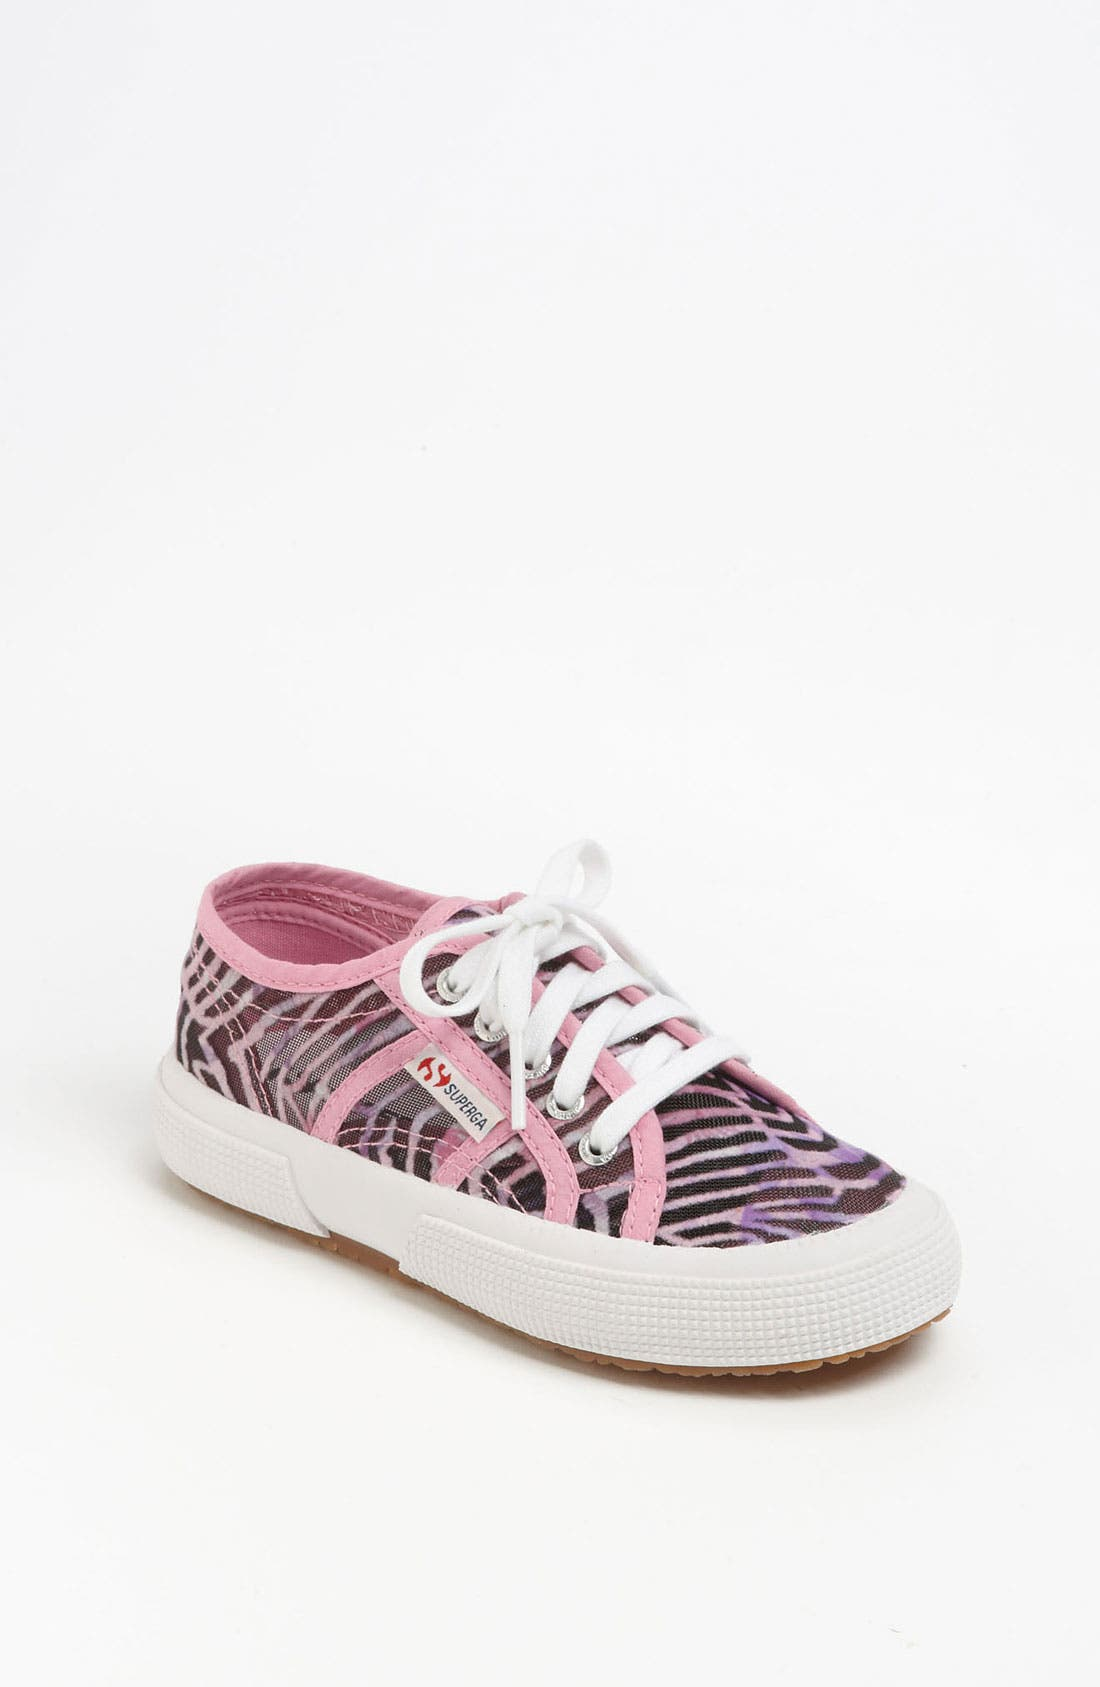 Alternate Image 1 Selected - Superga 'Safari Junior Classic' Sneaker (Walker, Toddler & Little Kid)